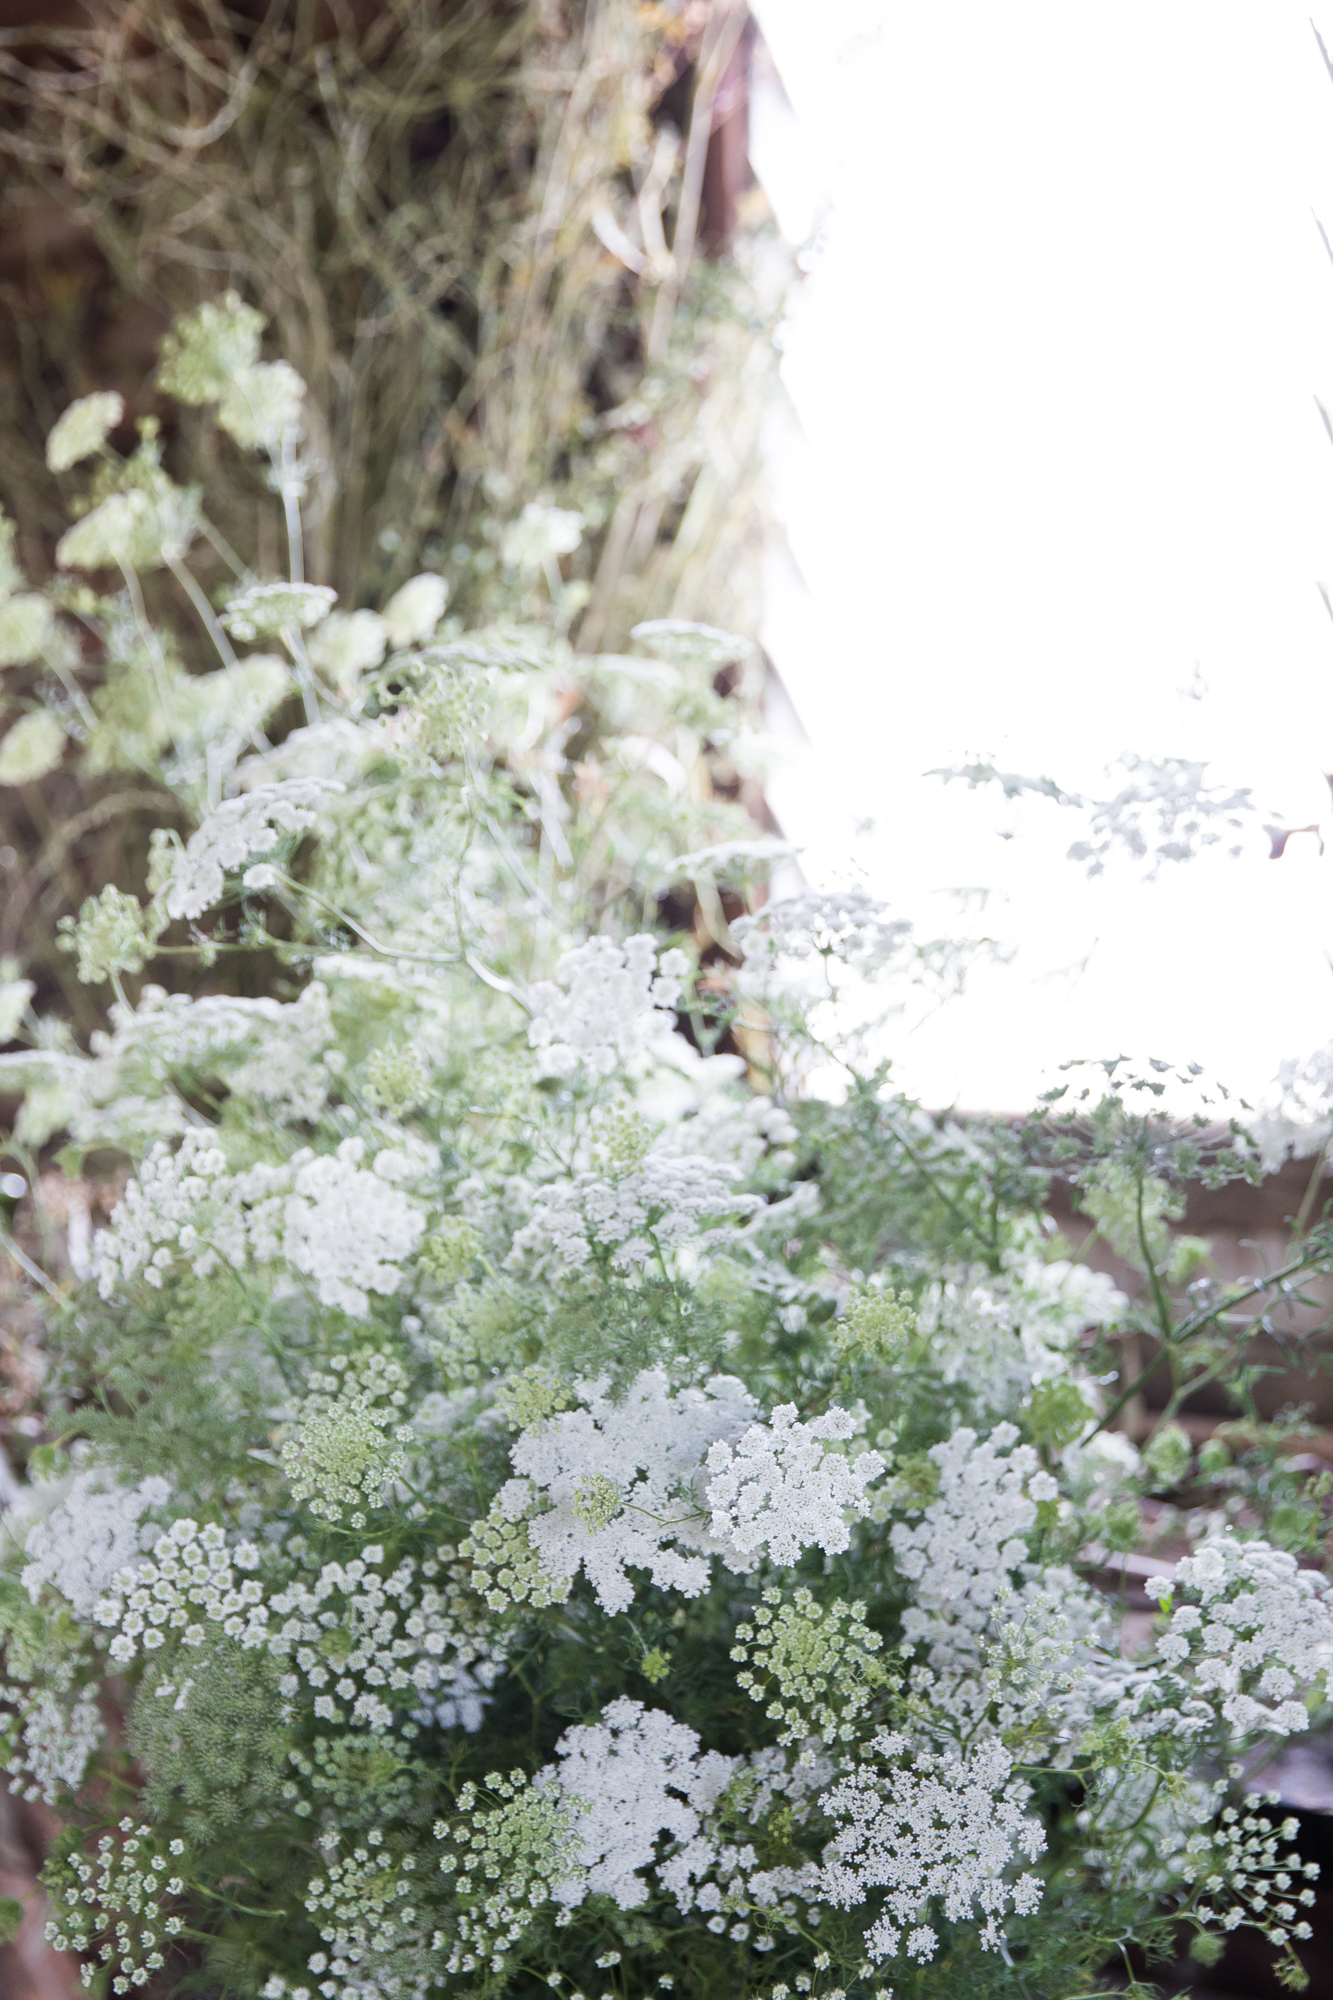 What I thought was Queen Anne's Lace turned out to be Hemlock - stinky and poisonous but beautiful nonetheless.